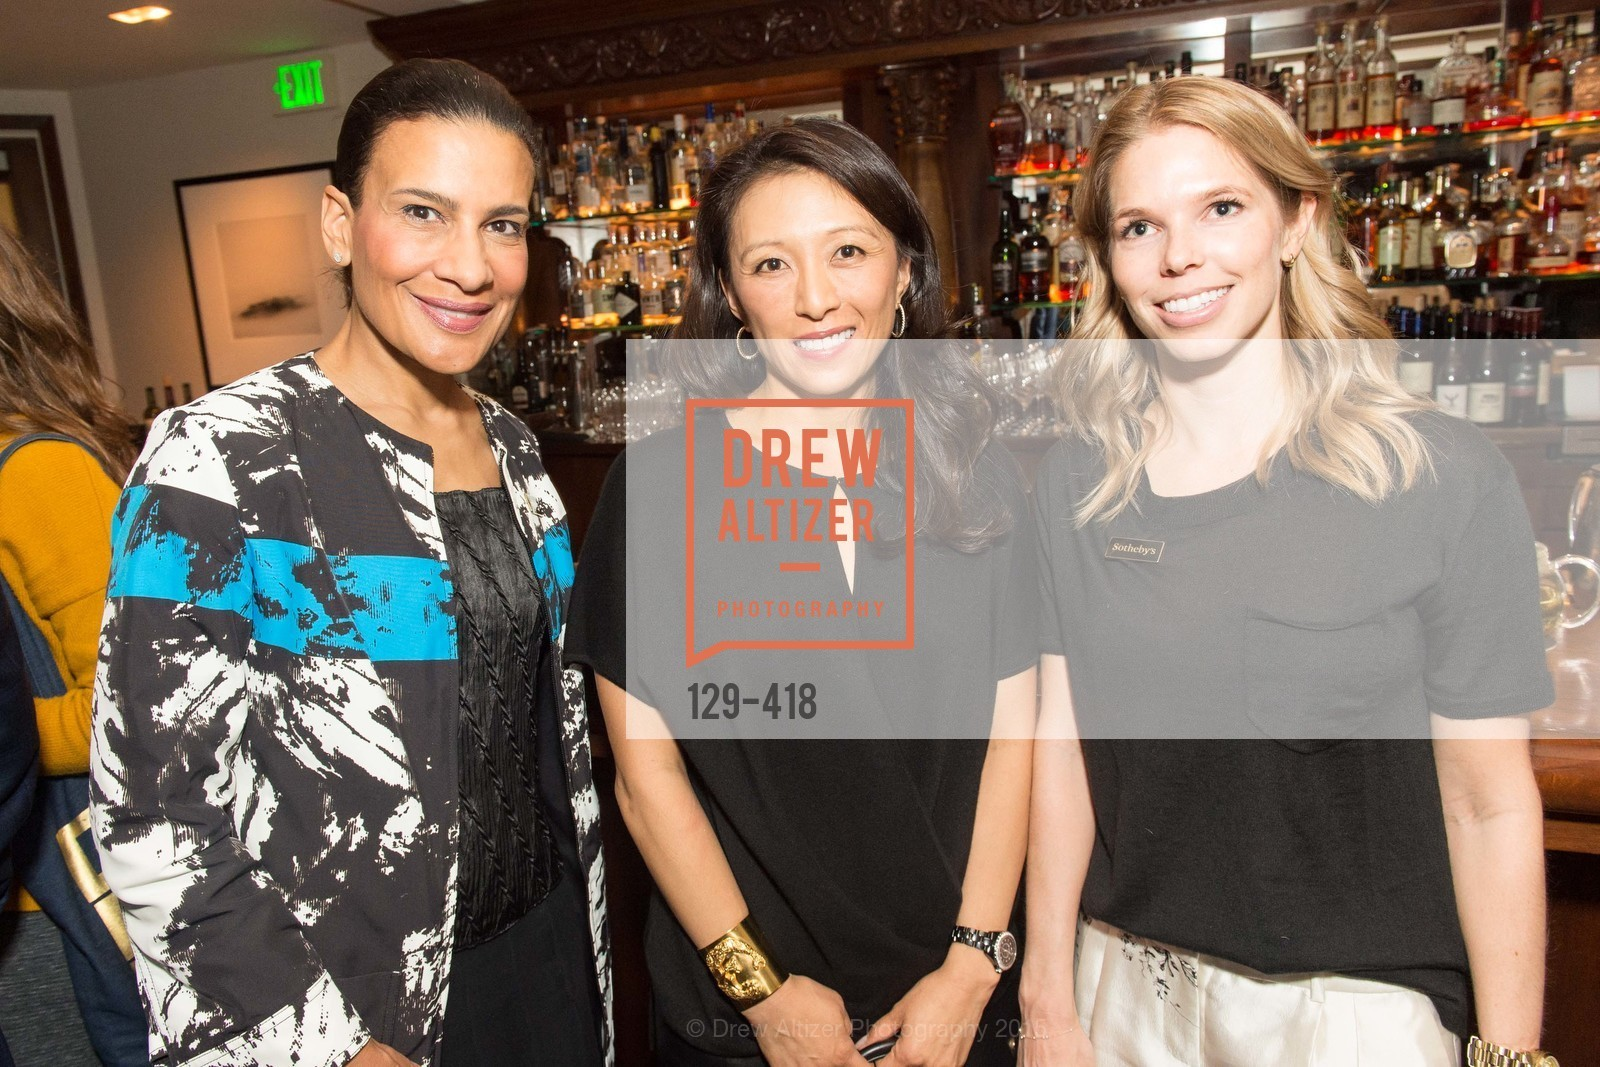 Andrea Fiuczynsky, Cori Bates, Courtney Kremers, Artsy and Sotheby's Village Pub Dinner, Village Pub, October 27th, 2015,Drew Altizer, Drew Altizer Photography, full-service agency, private events, San Francisco photographer, photographer california